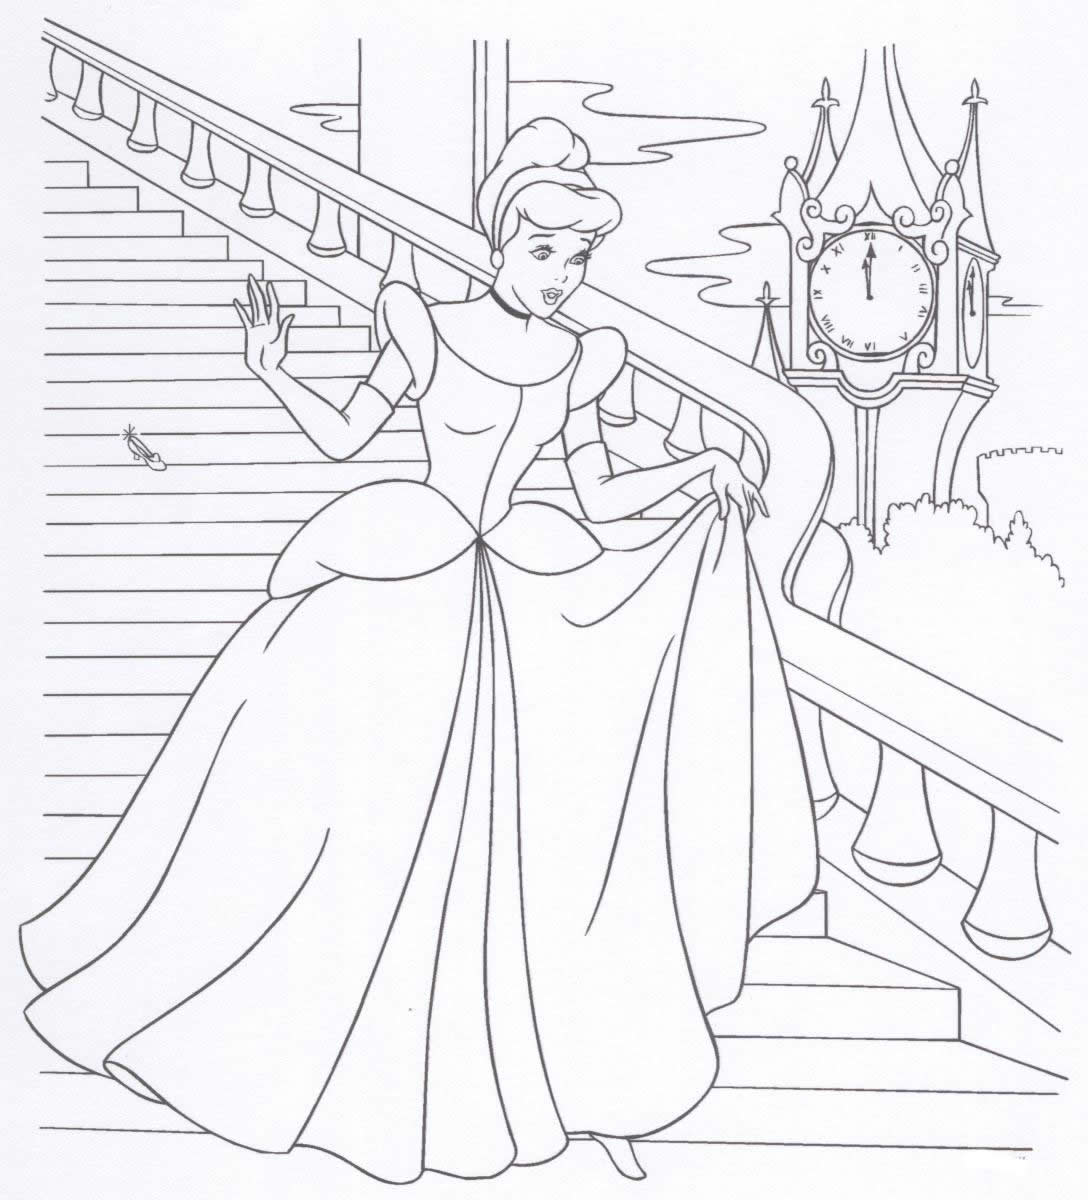 disney princess jasmine coloring pages - photo#35